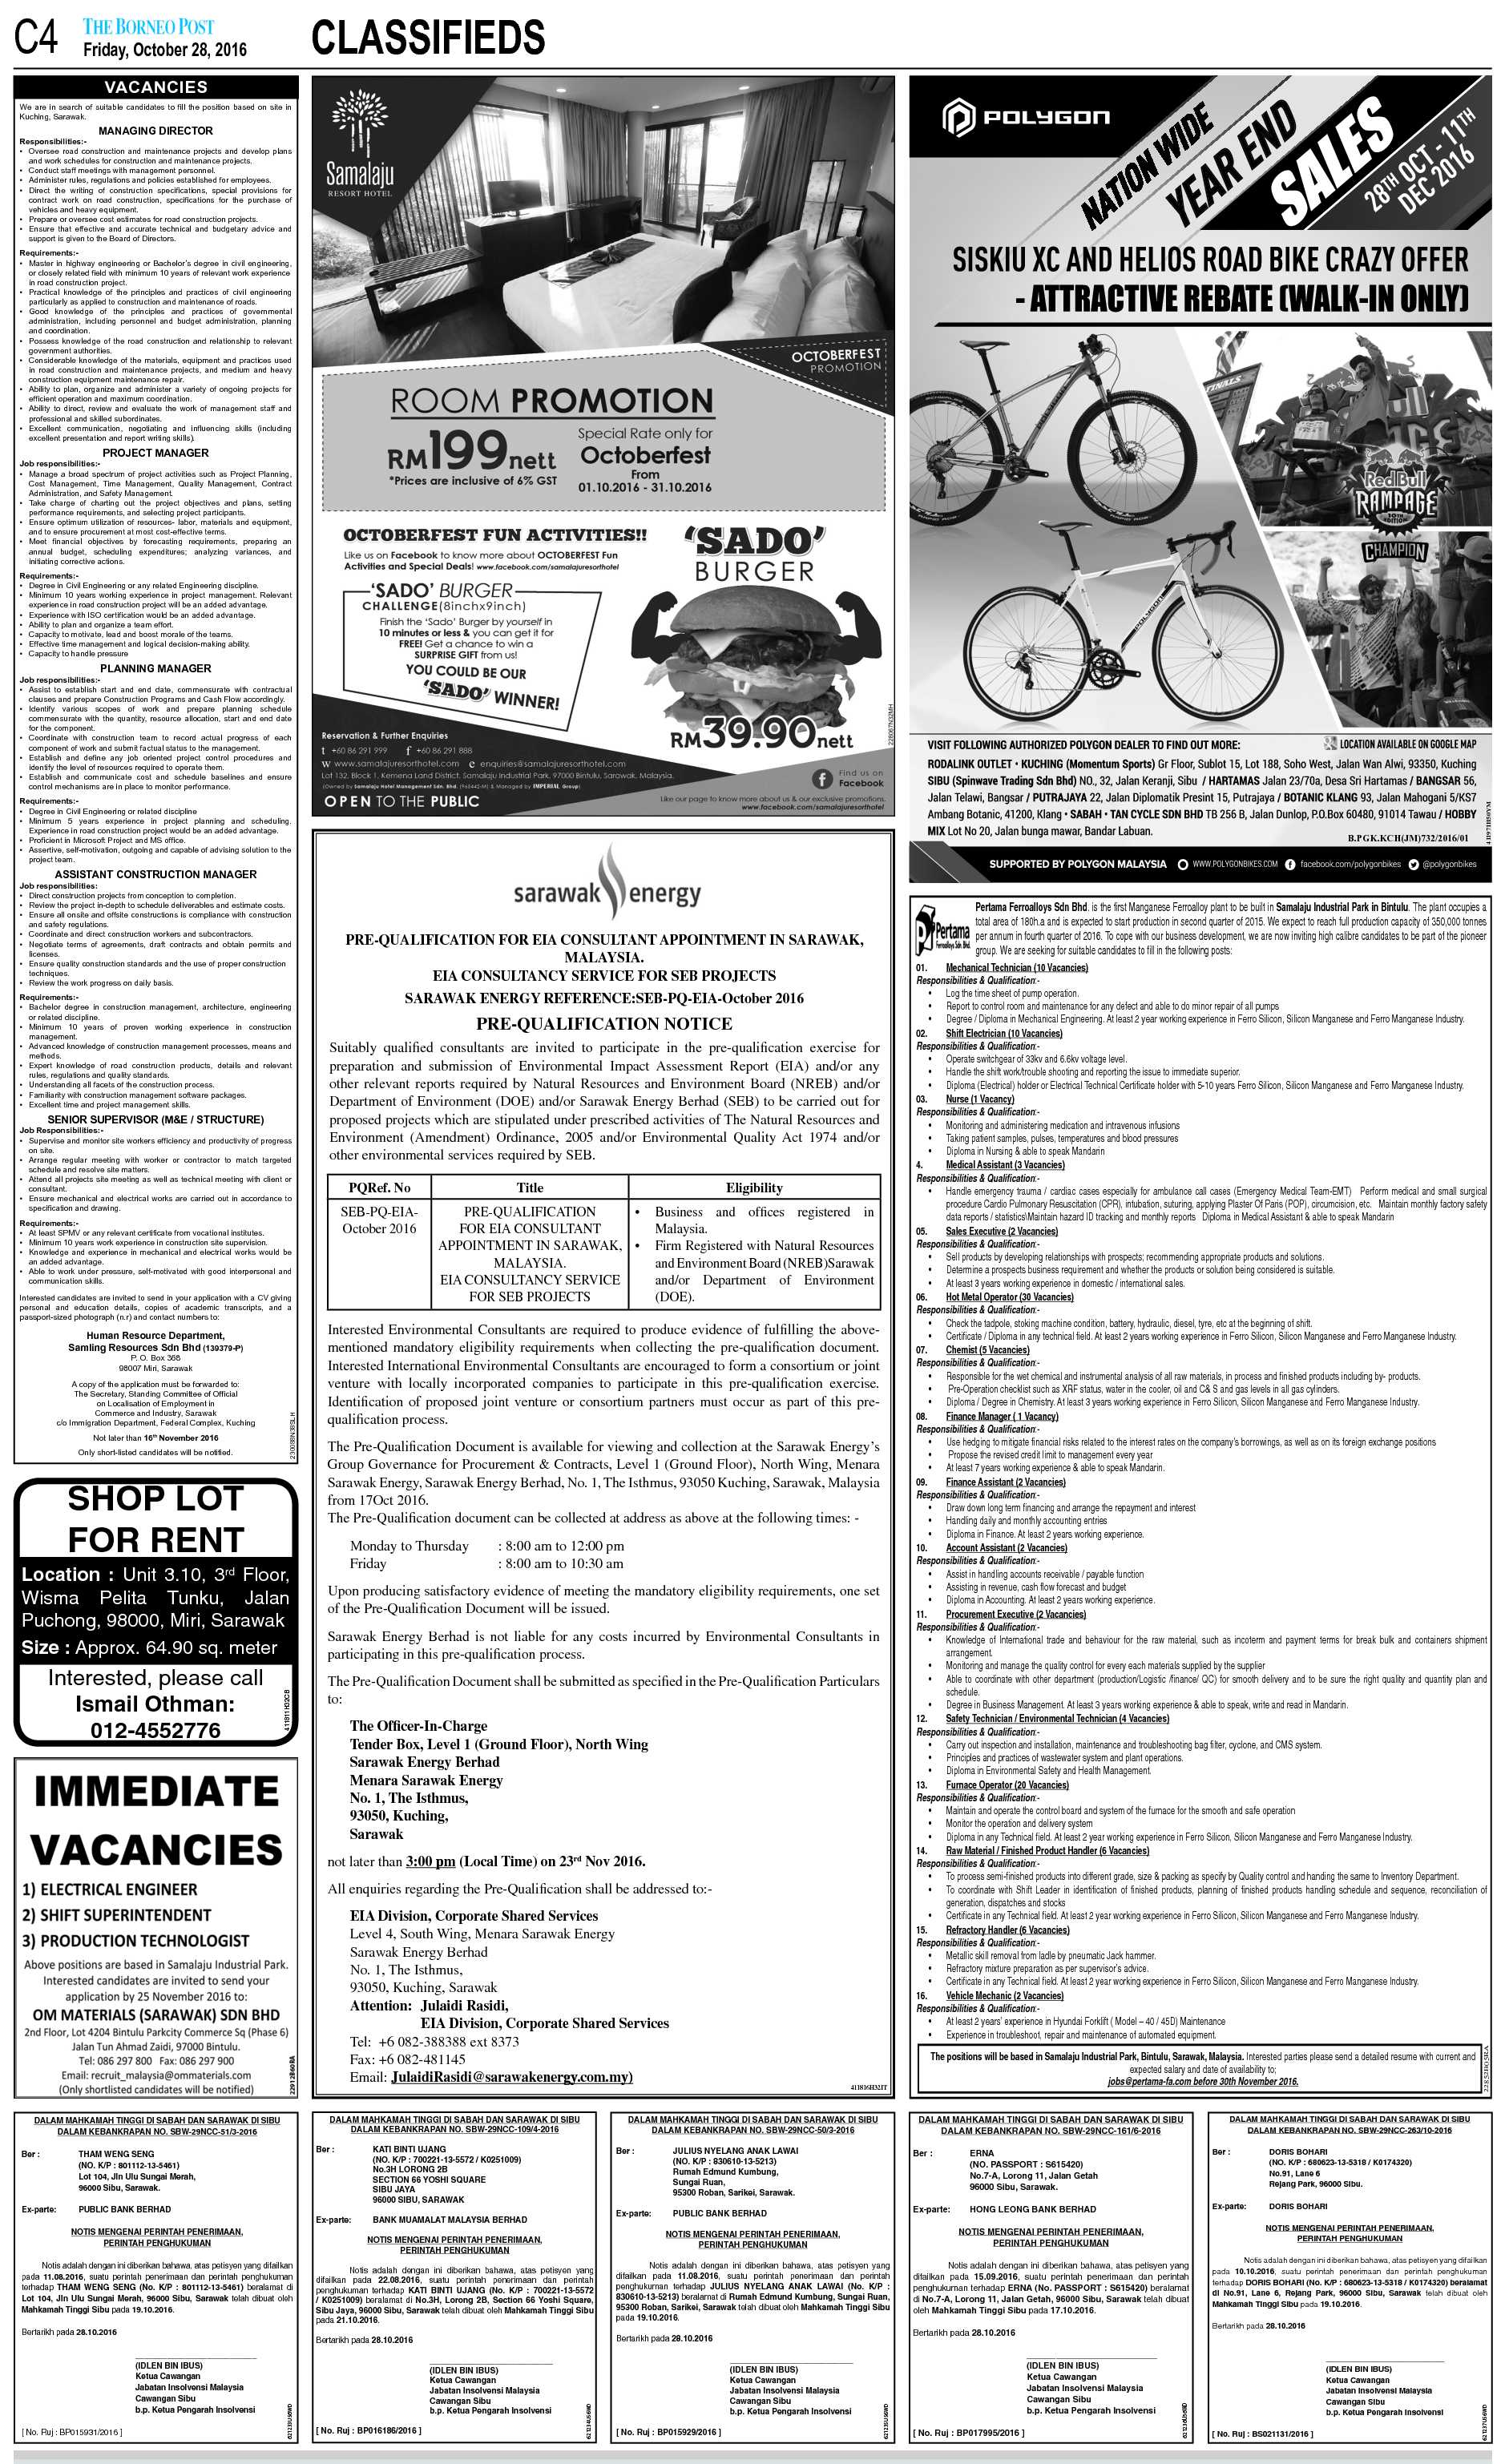 Friday - Oct 28 | The Borneo Post Classifieds